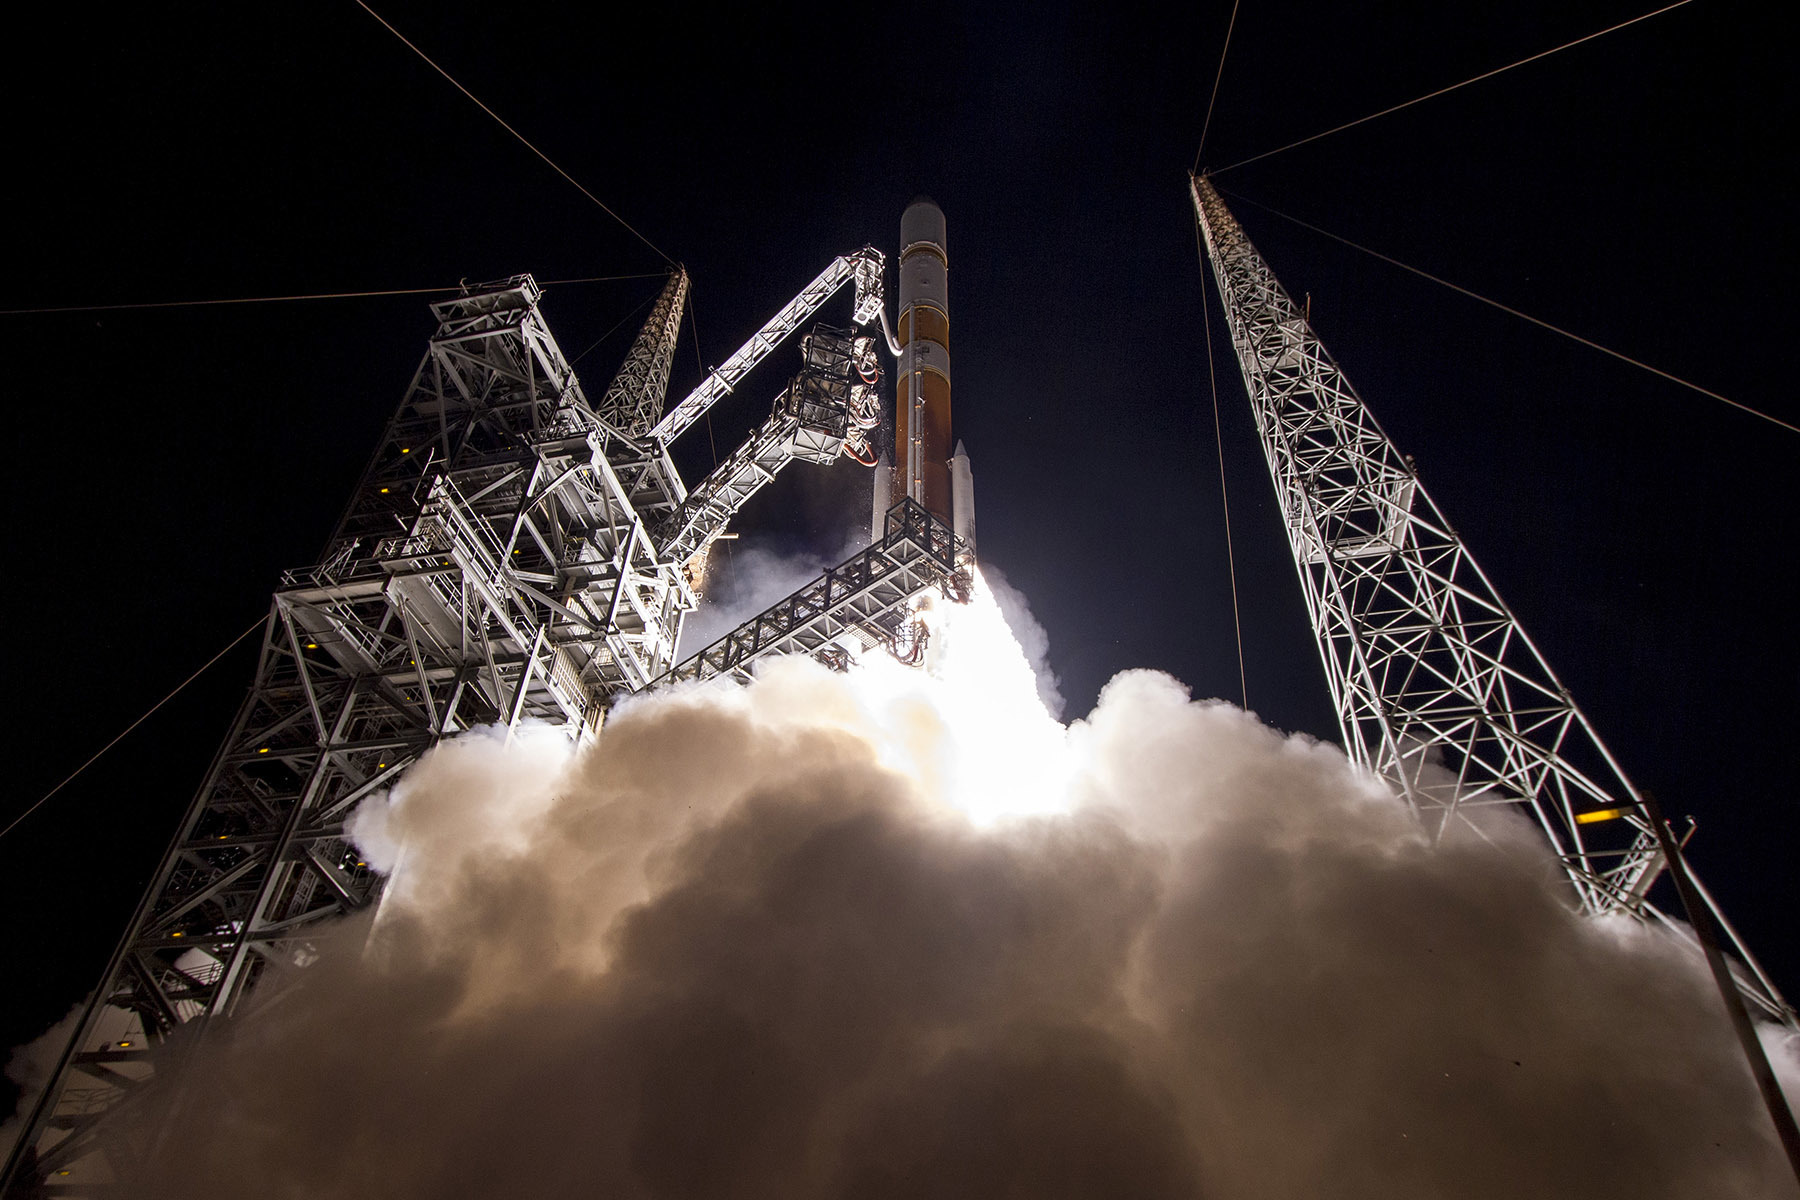 A Delta IV Rocket lifts off from Cape Canaveral, Florida on March 18, 2017, carrying the ninth Wideband Global Satellite Communication (WGS-9) satellite into orbit. The WGS-9 will aid in meeting the Canadian Armed Forces' strategic satellite communications requirements for many years into the future. PHOTO: © United Launch Alliance